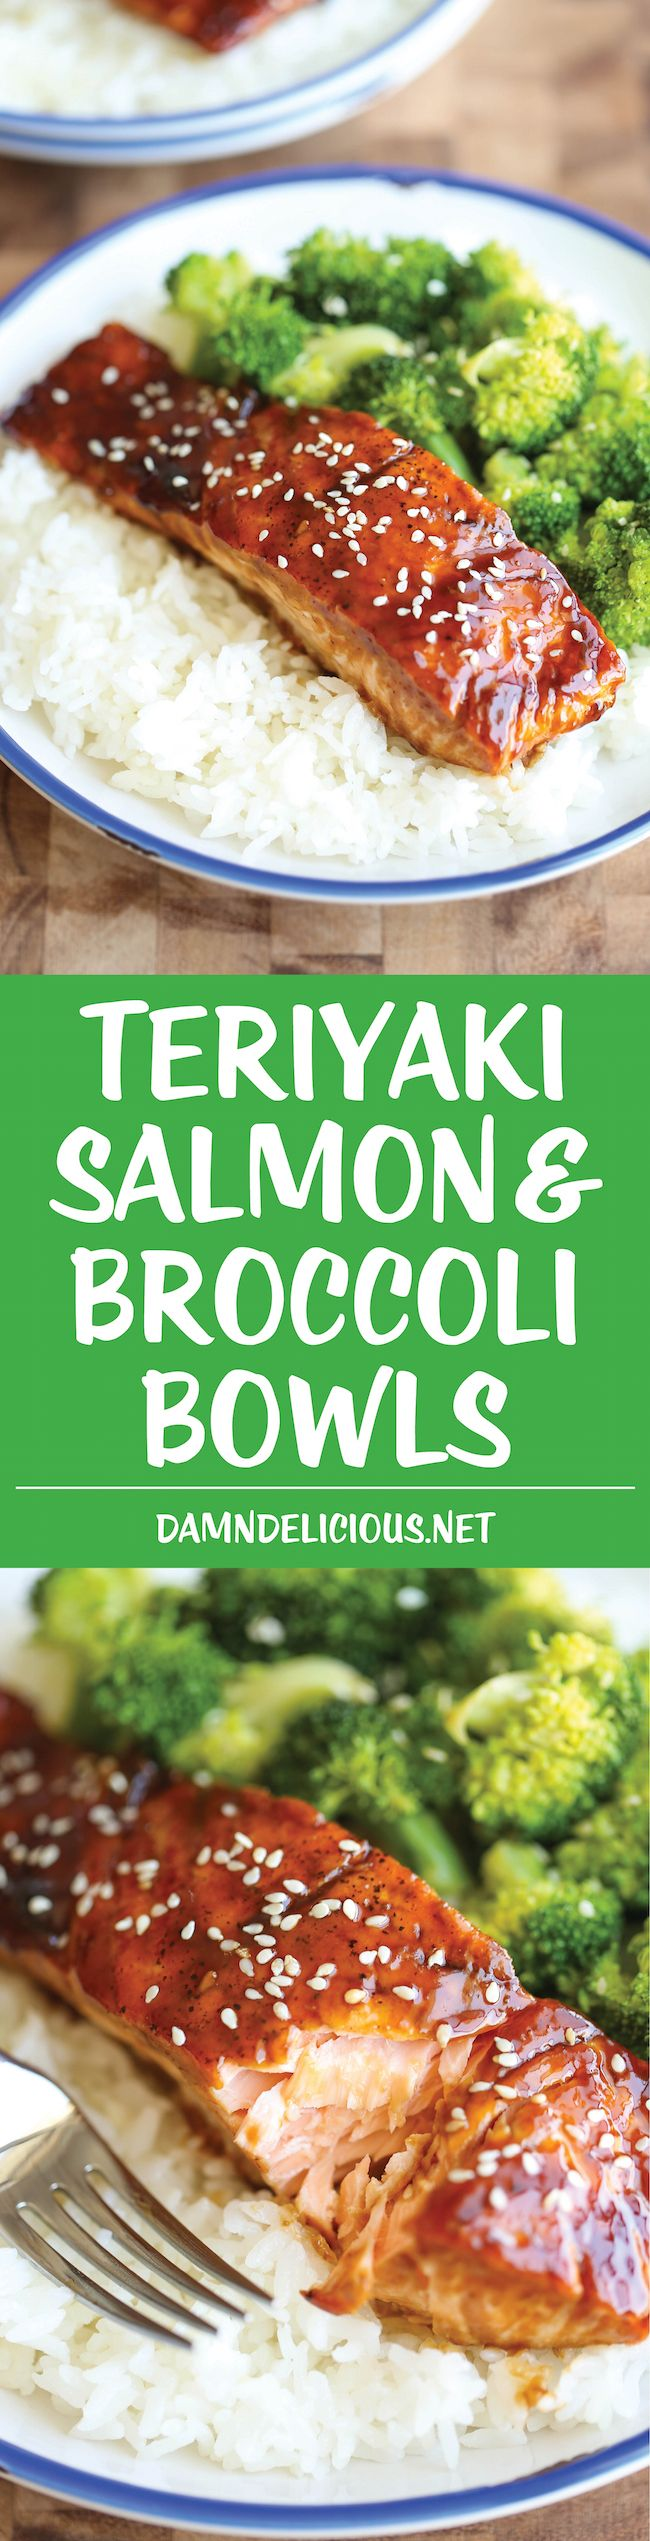 Teriyaki Salmon and Broccoli Bowls | There's no need for takeout anymore... you can easily make homemade #salmon teriyaki bowls in minutes!